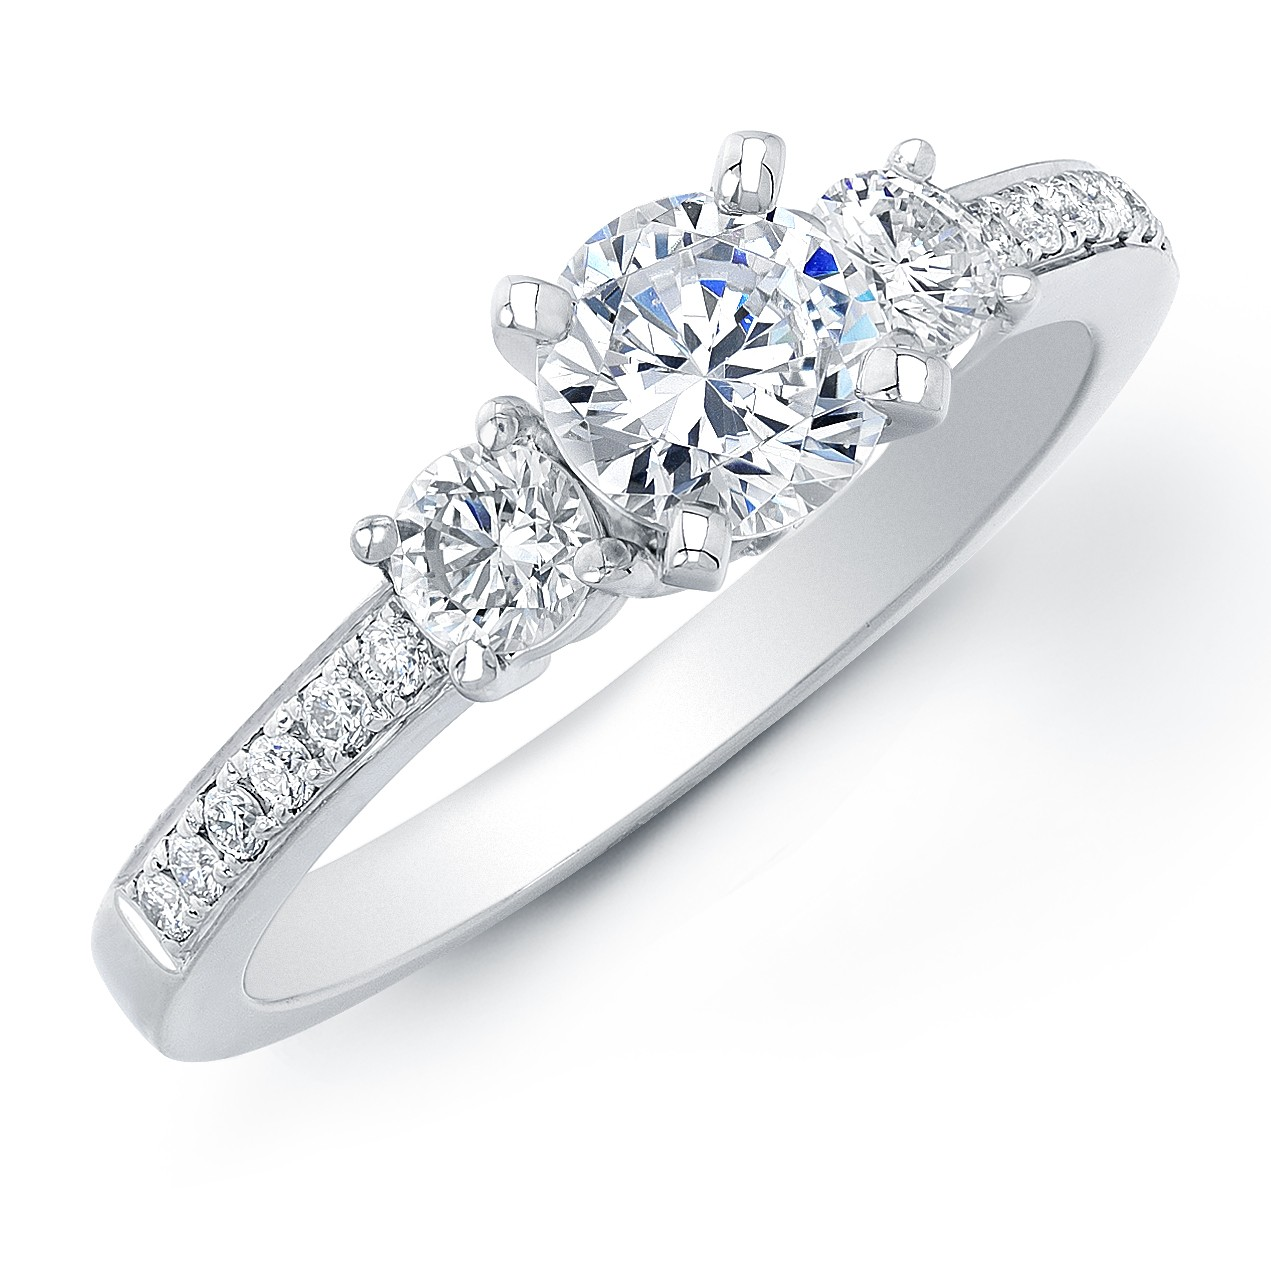 Stone Wedding Rings: 1Ct TW Diamond Three-Stone Engagement Ring